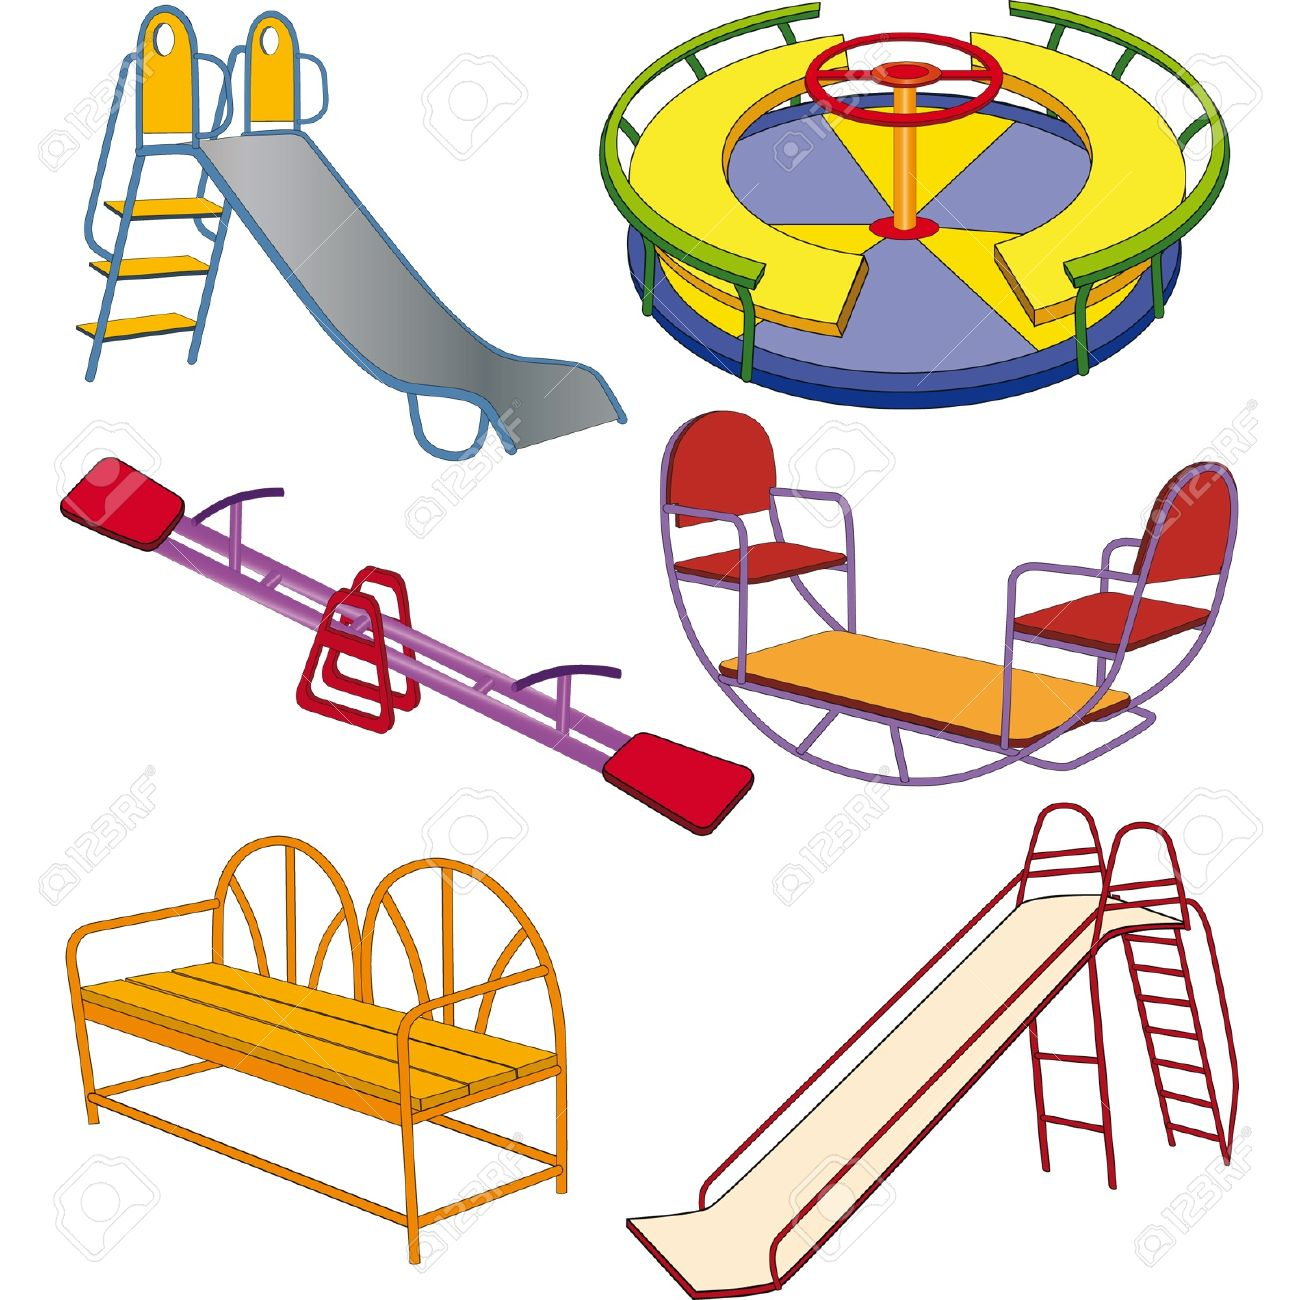 The complete set a children s swing Stock Vector - 12942435